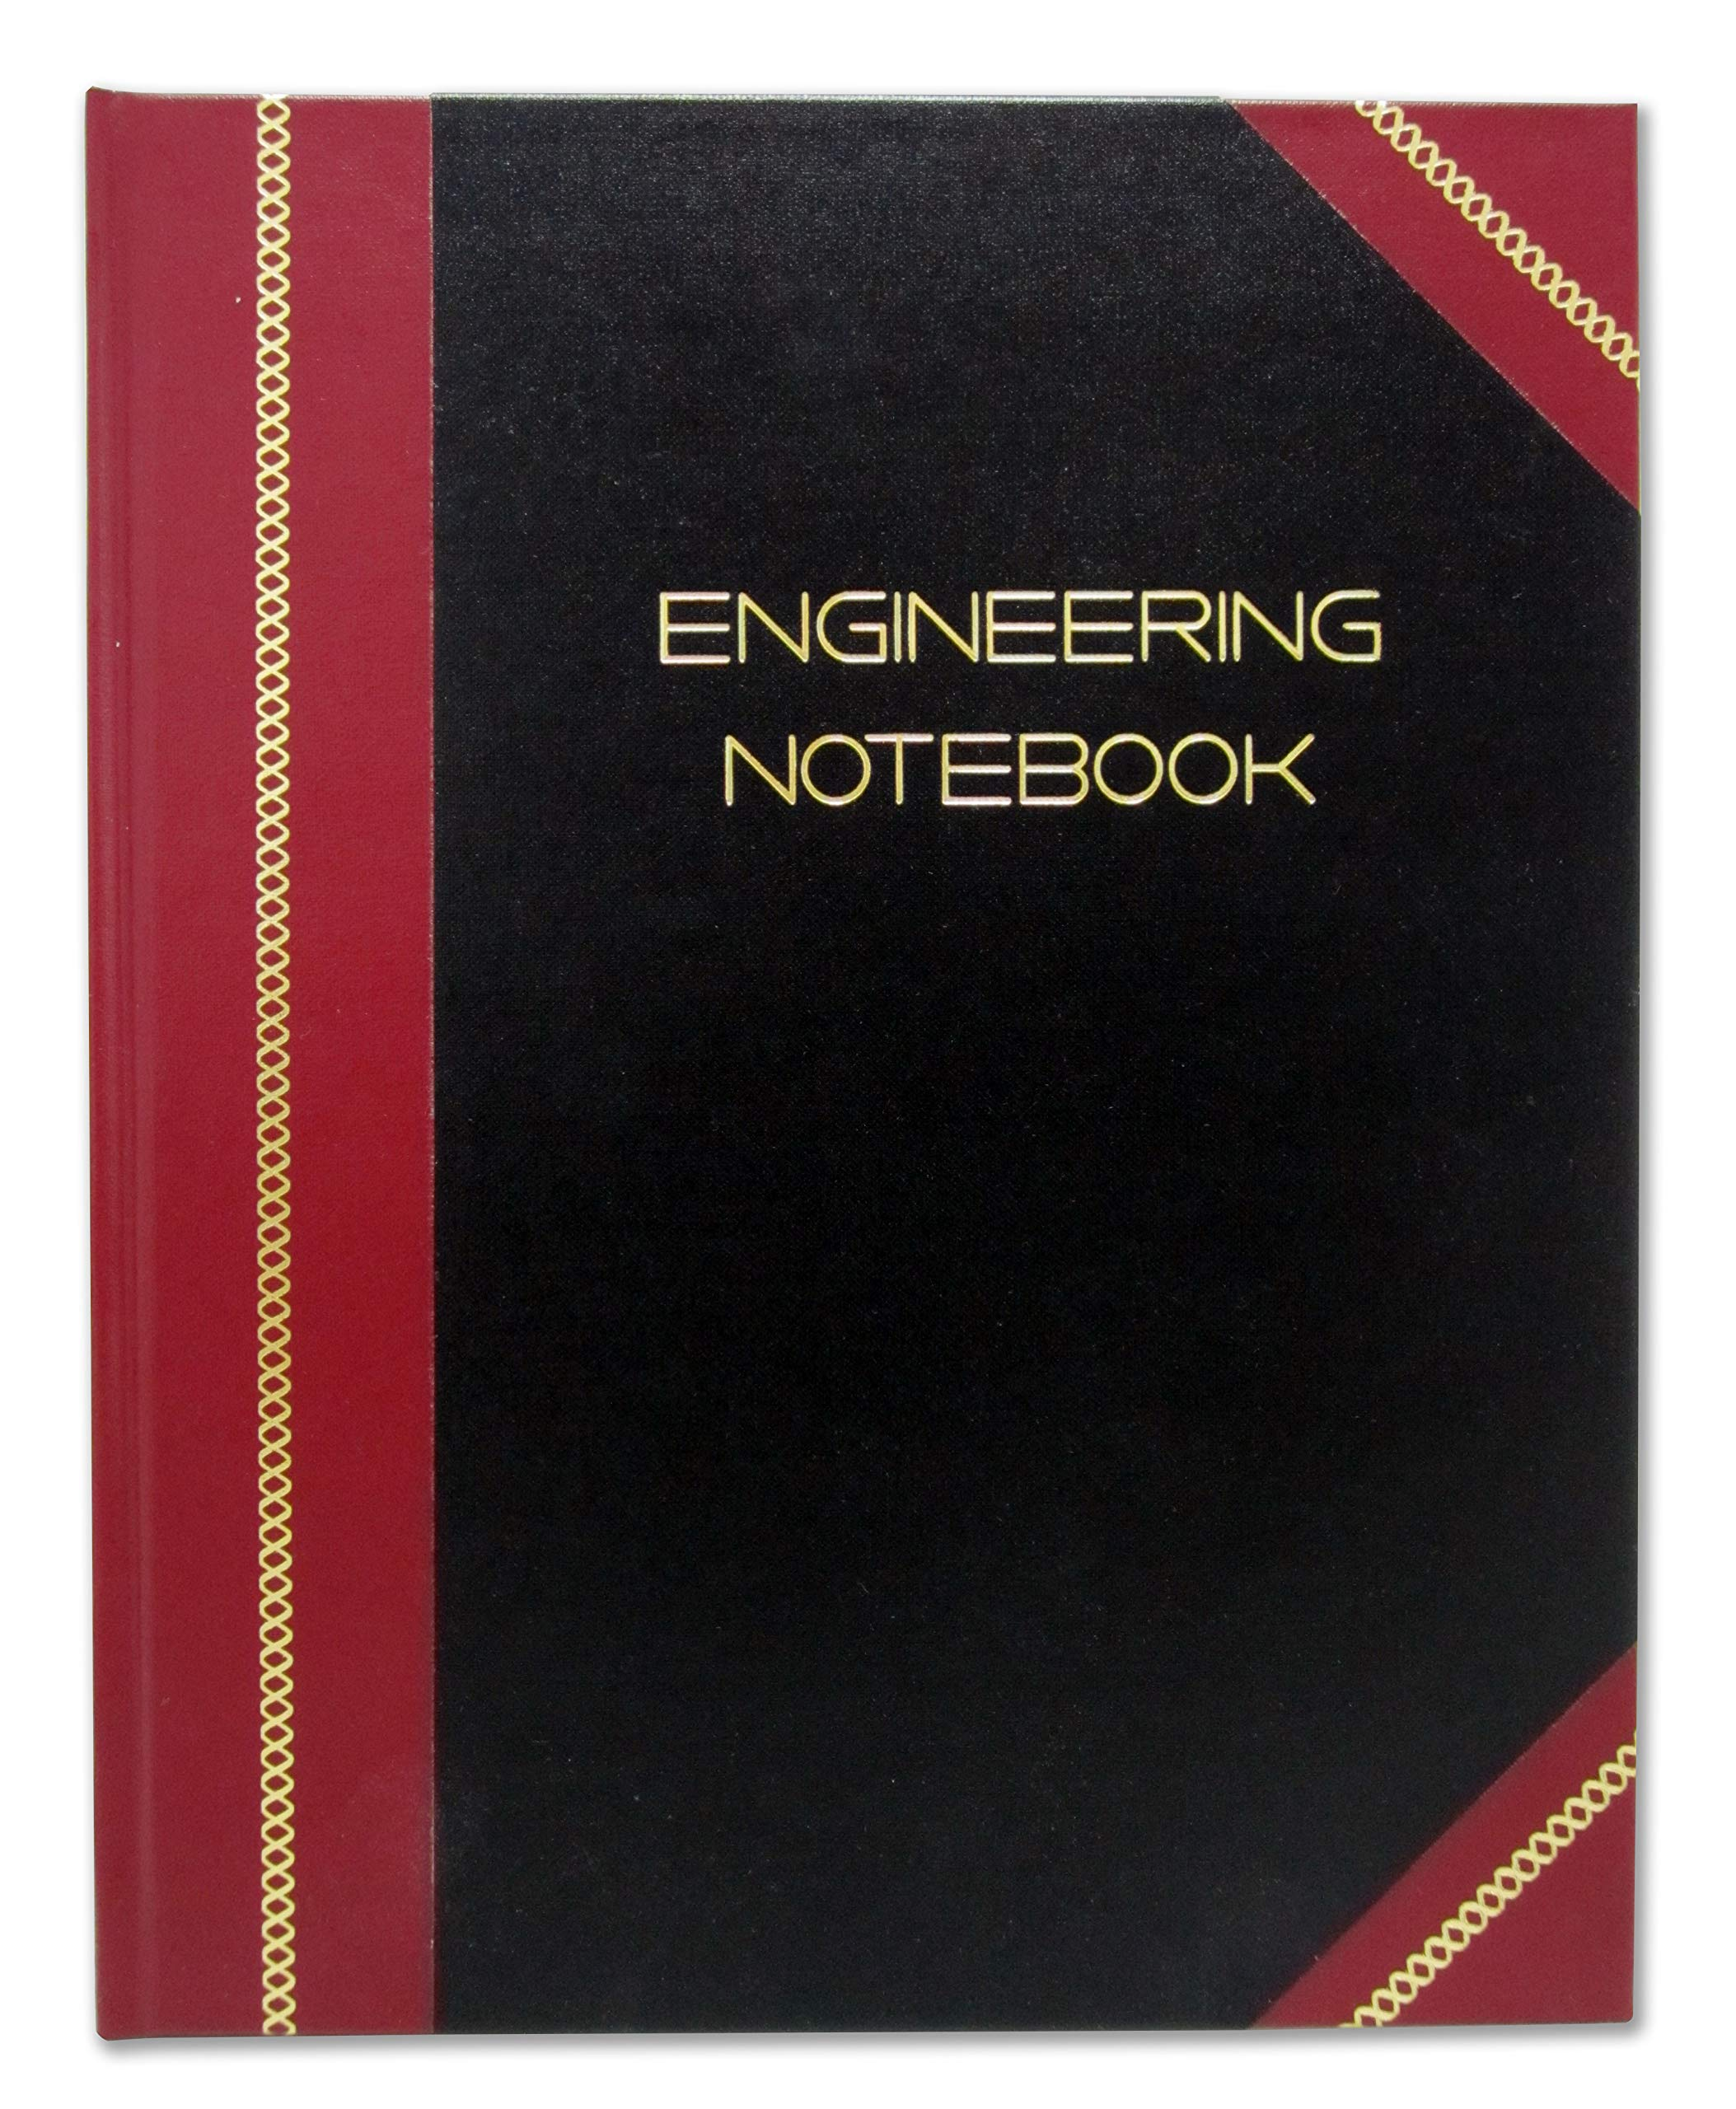 BookFactory Professional Engineering Notebook - 96 Pages (Quad Ruled - .25'' Engineering Grid Format), 8'' x 10'', Engineering Lab Notebook, Black and Burgundy Cover, Smyth Sewn Hardbound (EPRIL-096-SGS- by BookFactory